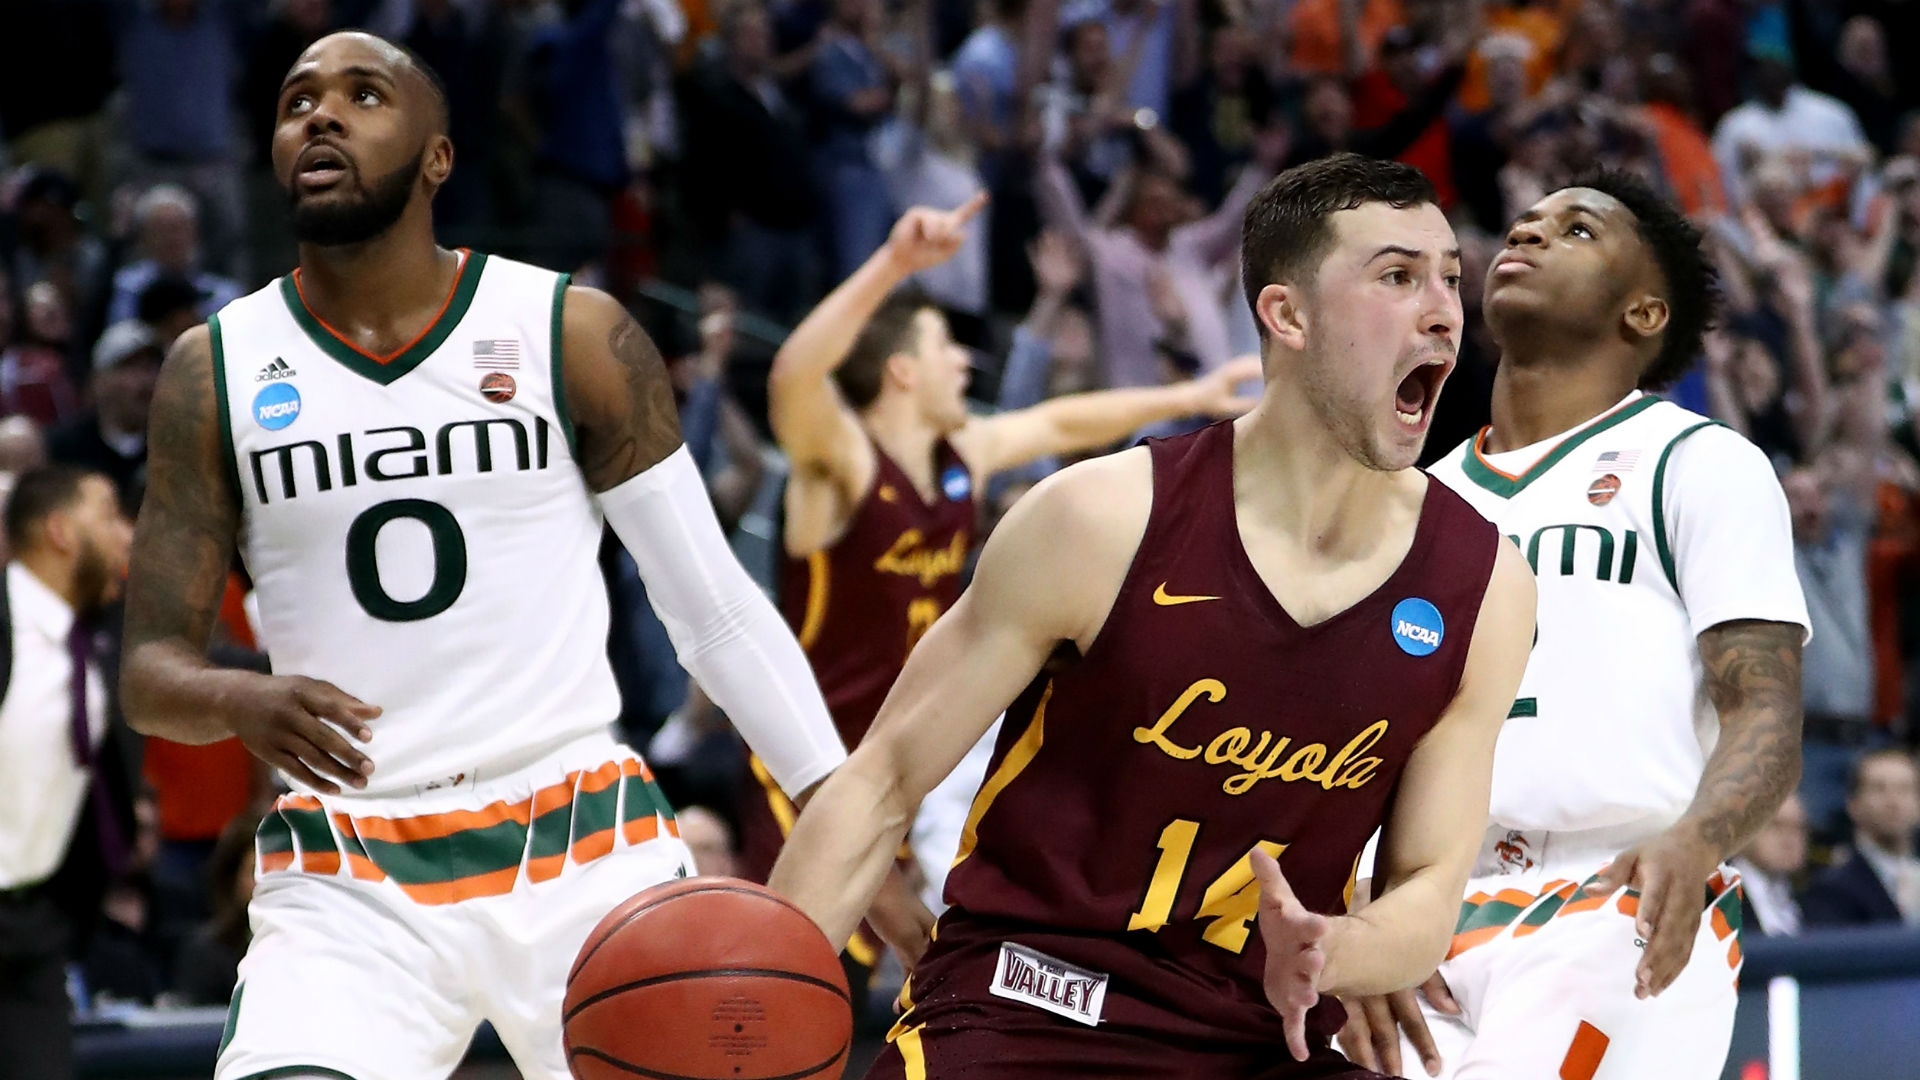 11-seed Loyola Chicago upsets Miami with 28-foot shot at buzzer